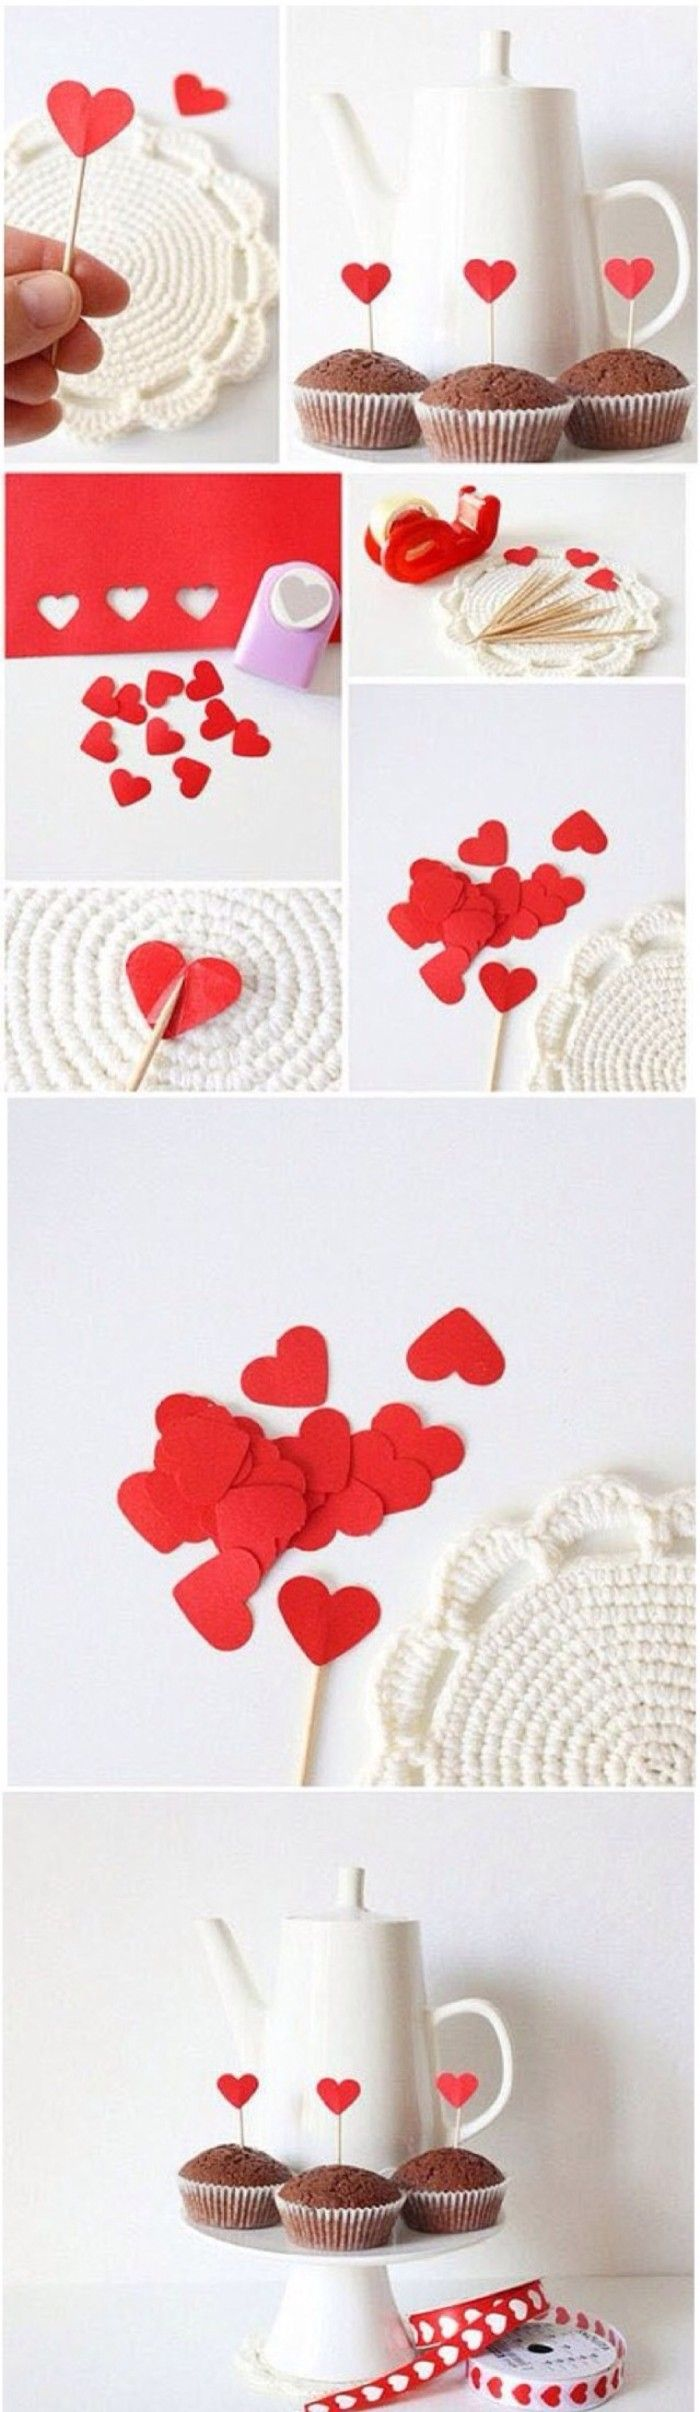 As read heart is always the express of love, bake some cake at home and then make some heart shaped decorations. This seems like quite romantic during this Valentine's Day #dessert